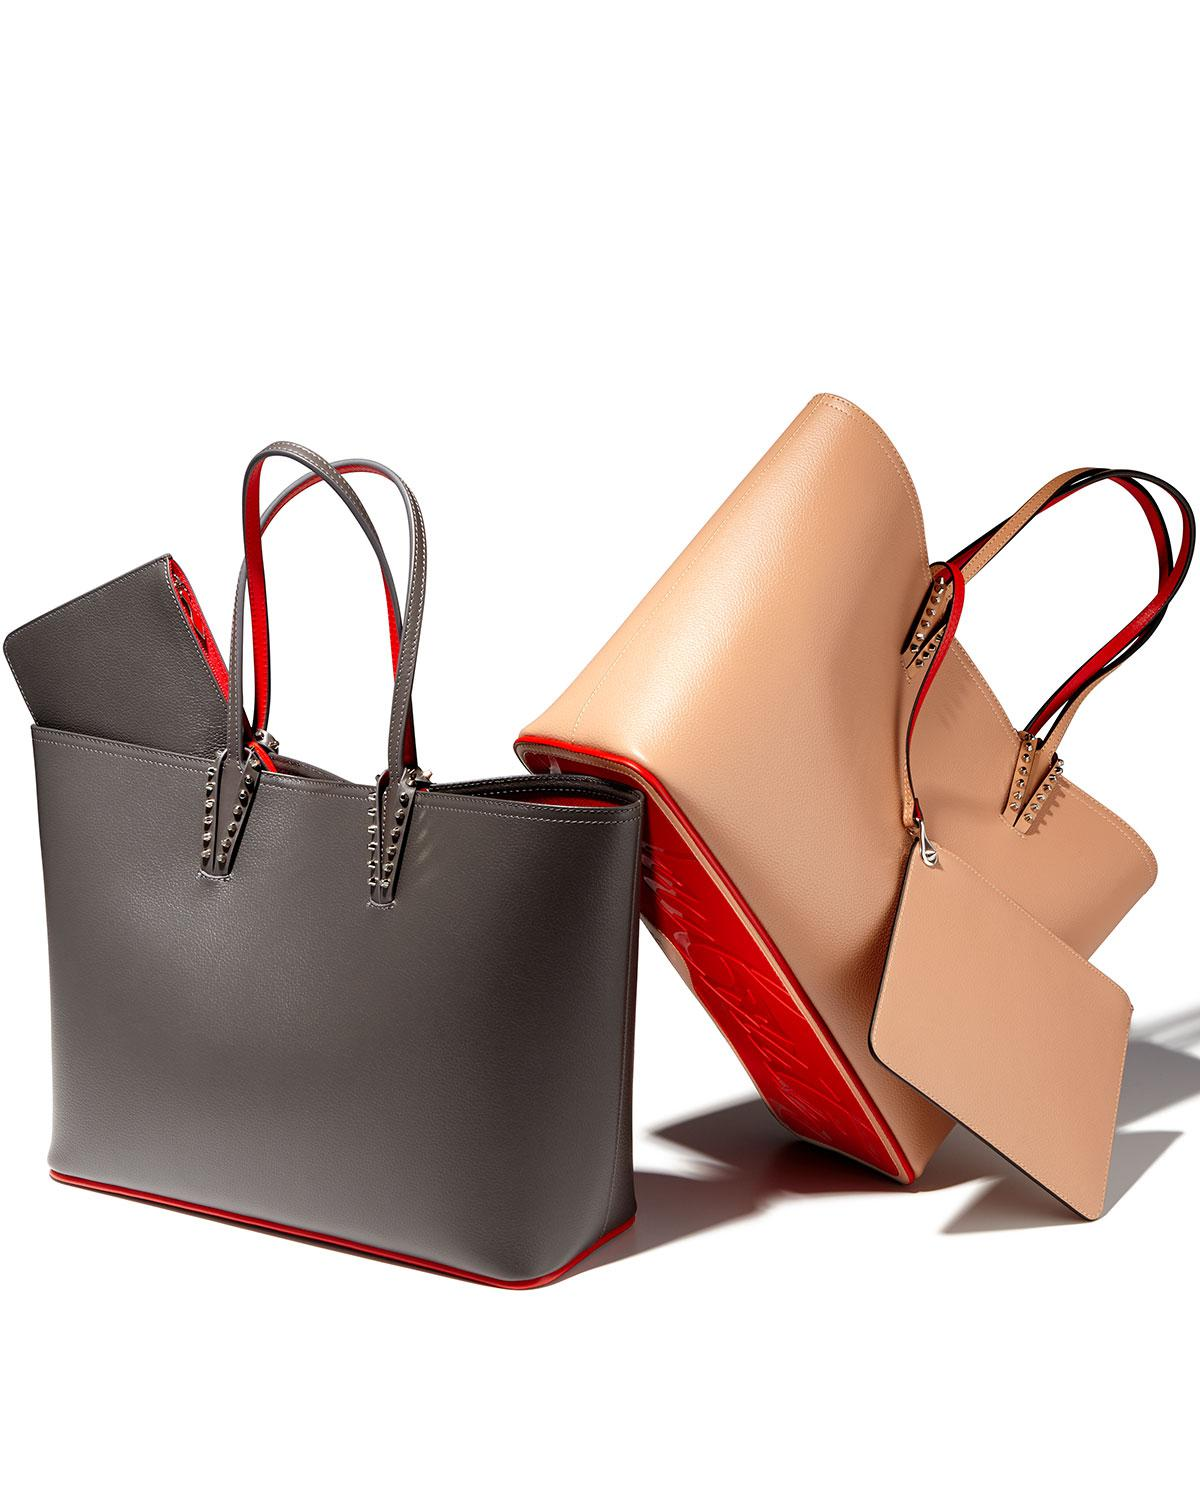 1543f4047 Christian Louboutin Cabata East-west Leather Tote Bag in Black - Lyst